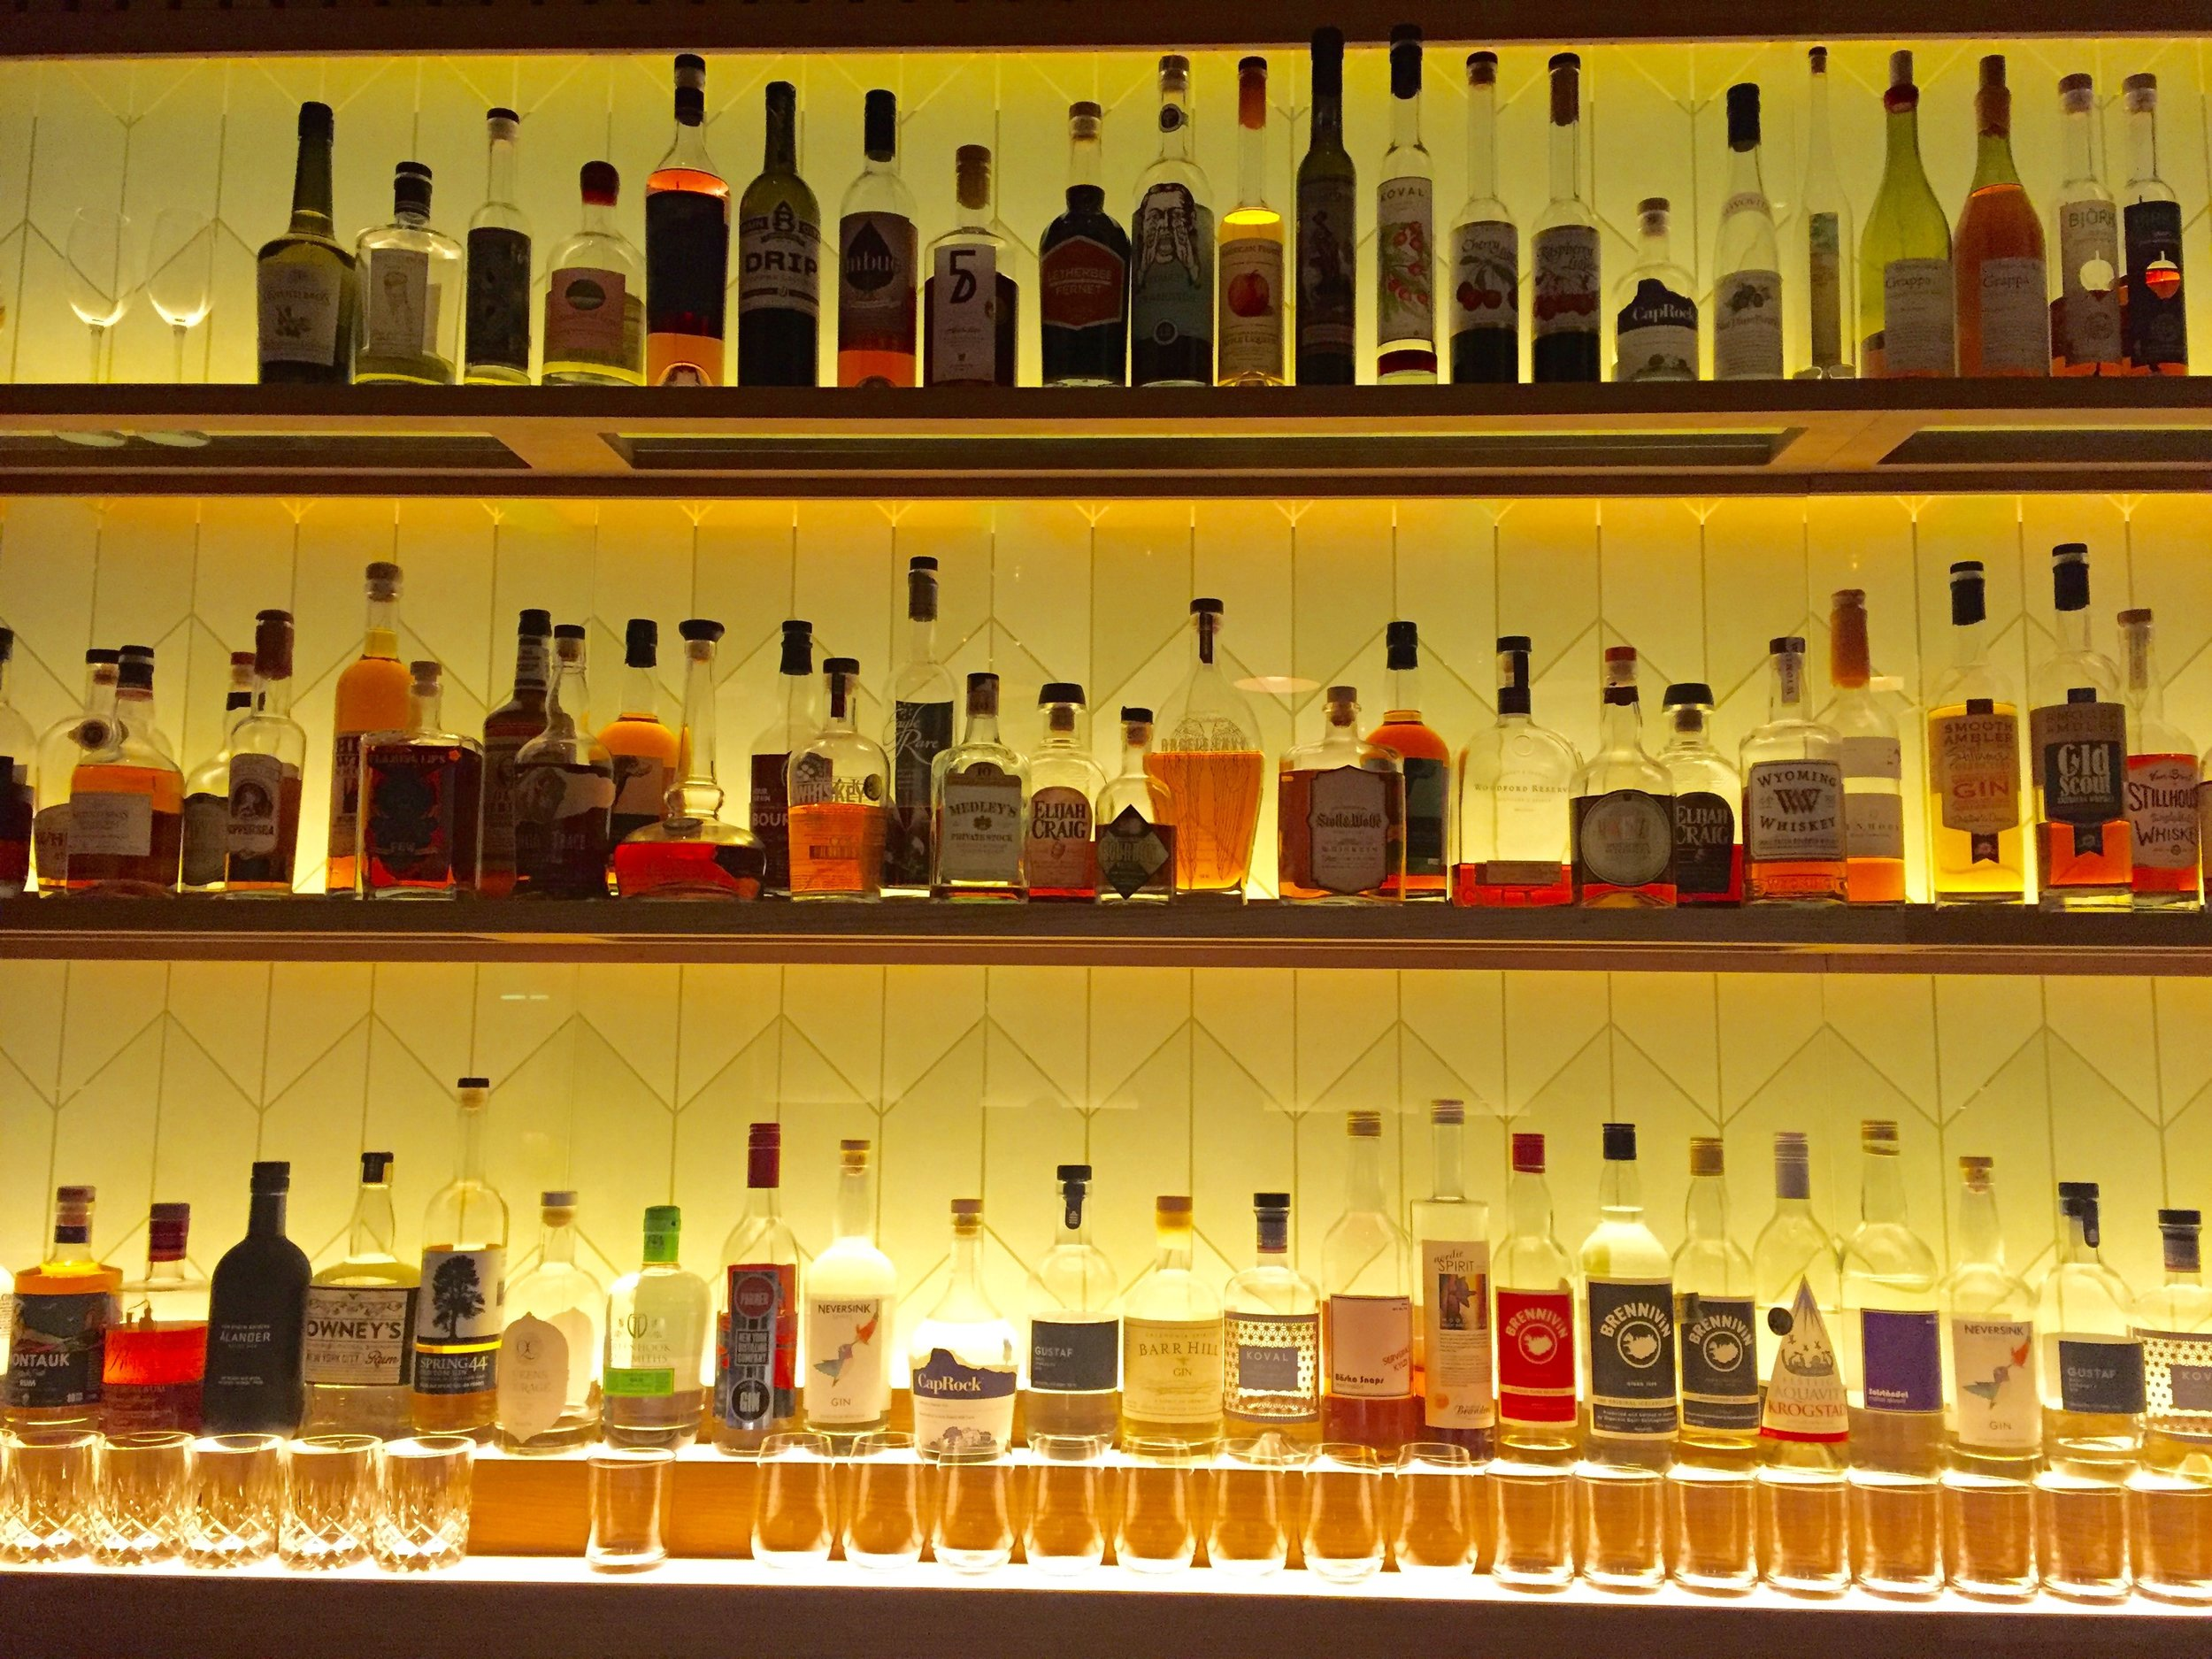 The backlit bar shelves at Argern hold a variety of artisan bottles with amber and gold liquids